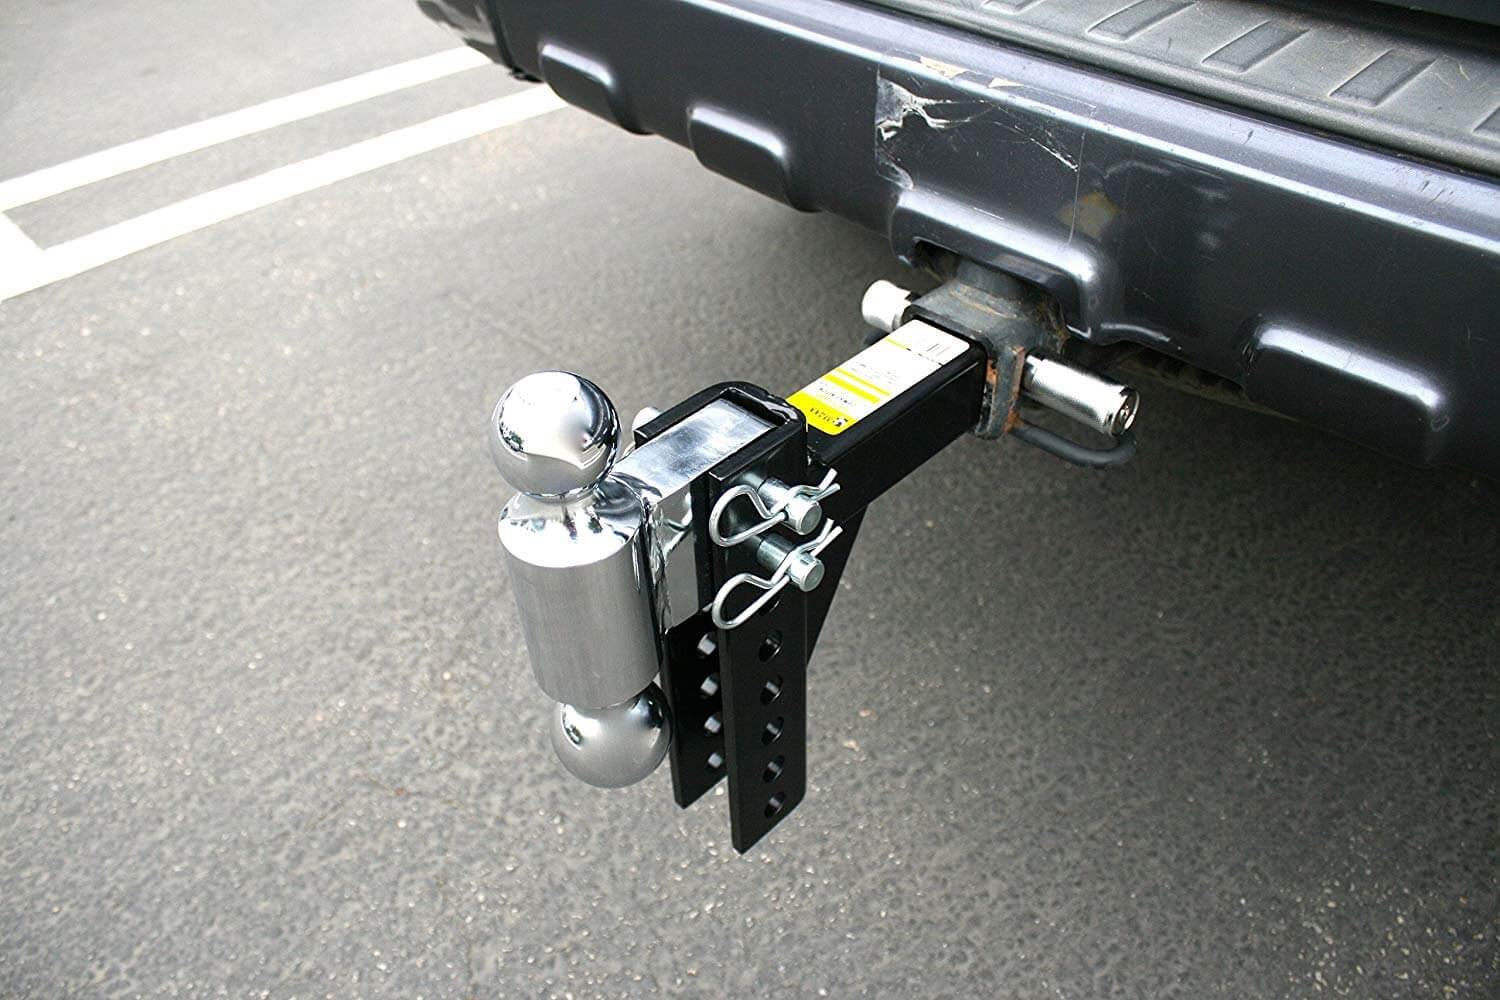 Trailer Hitch Ball Sizes >> Best Adjustable Trailer Hitch Reviews 2020 - CarCareHunt